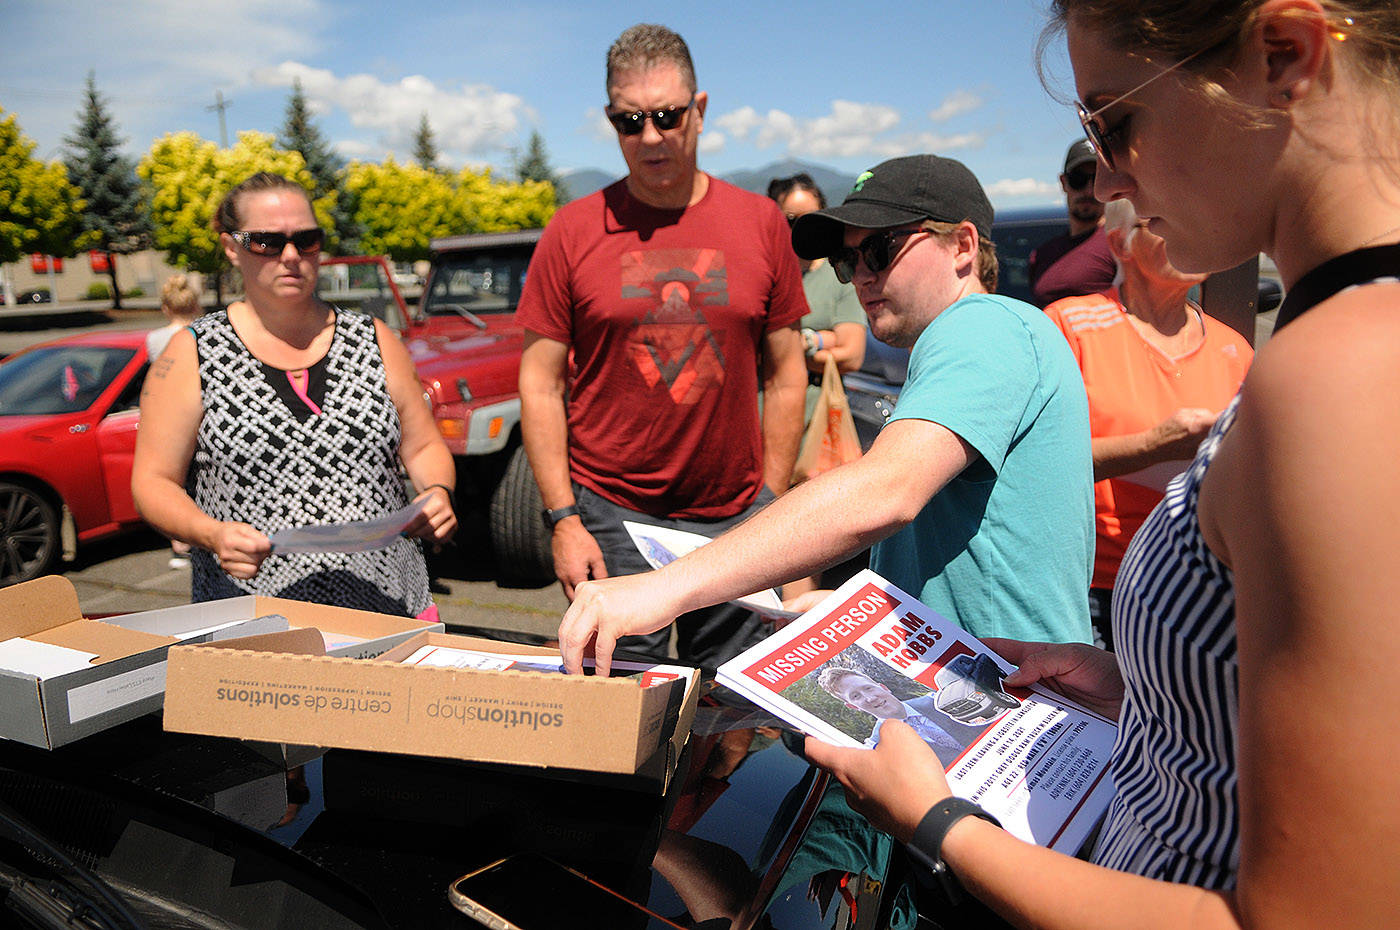 Brandon Hobbs (turquoise shirt), brother of missing Abbotsford man Adam Hobbs, gathers with other family and friends to distribute posters in Chilliwack on Thursday, June 17, 2021. (Jenna Hauck/ Chilliwack Progress)